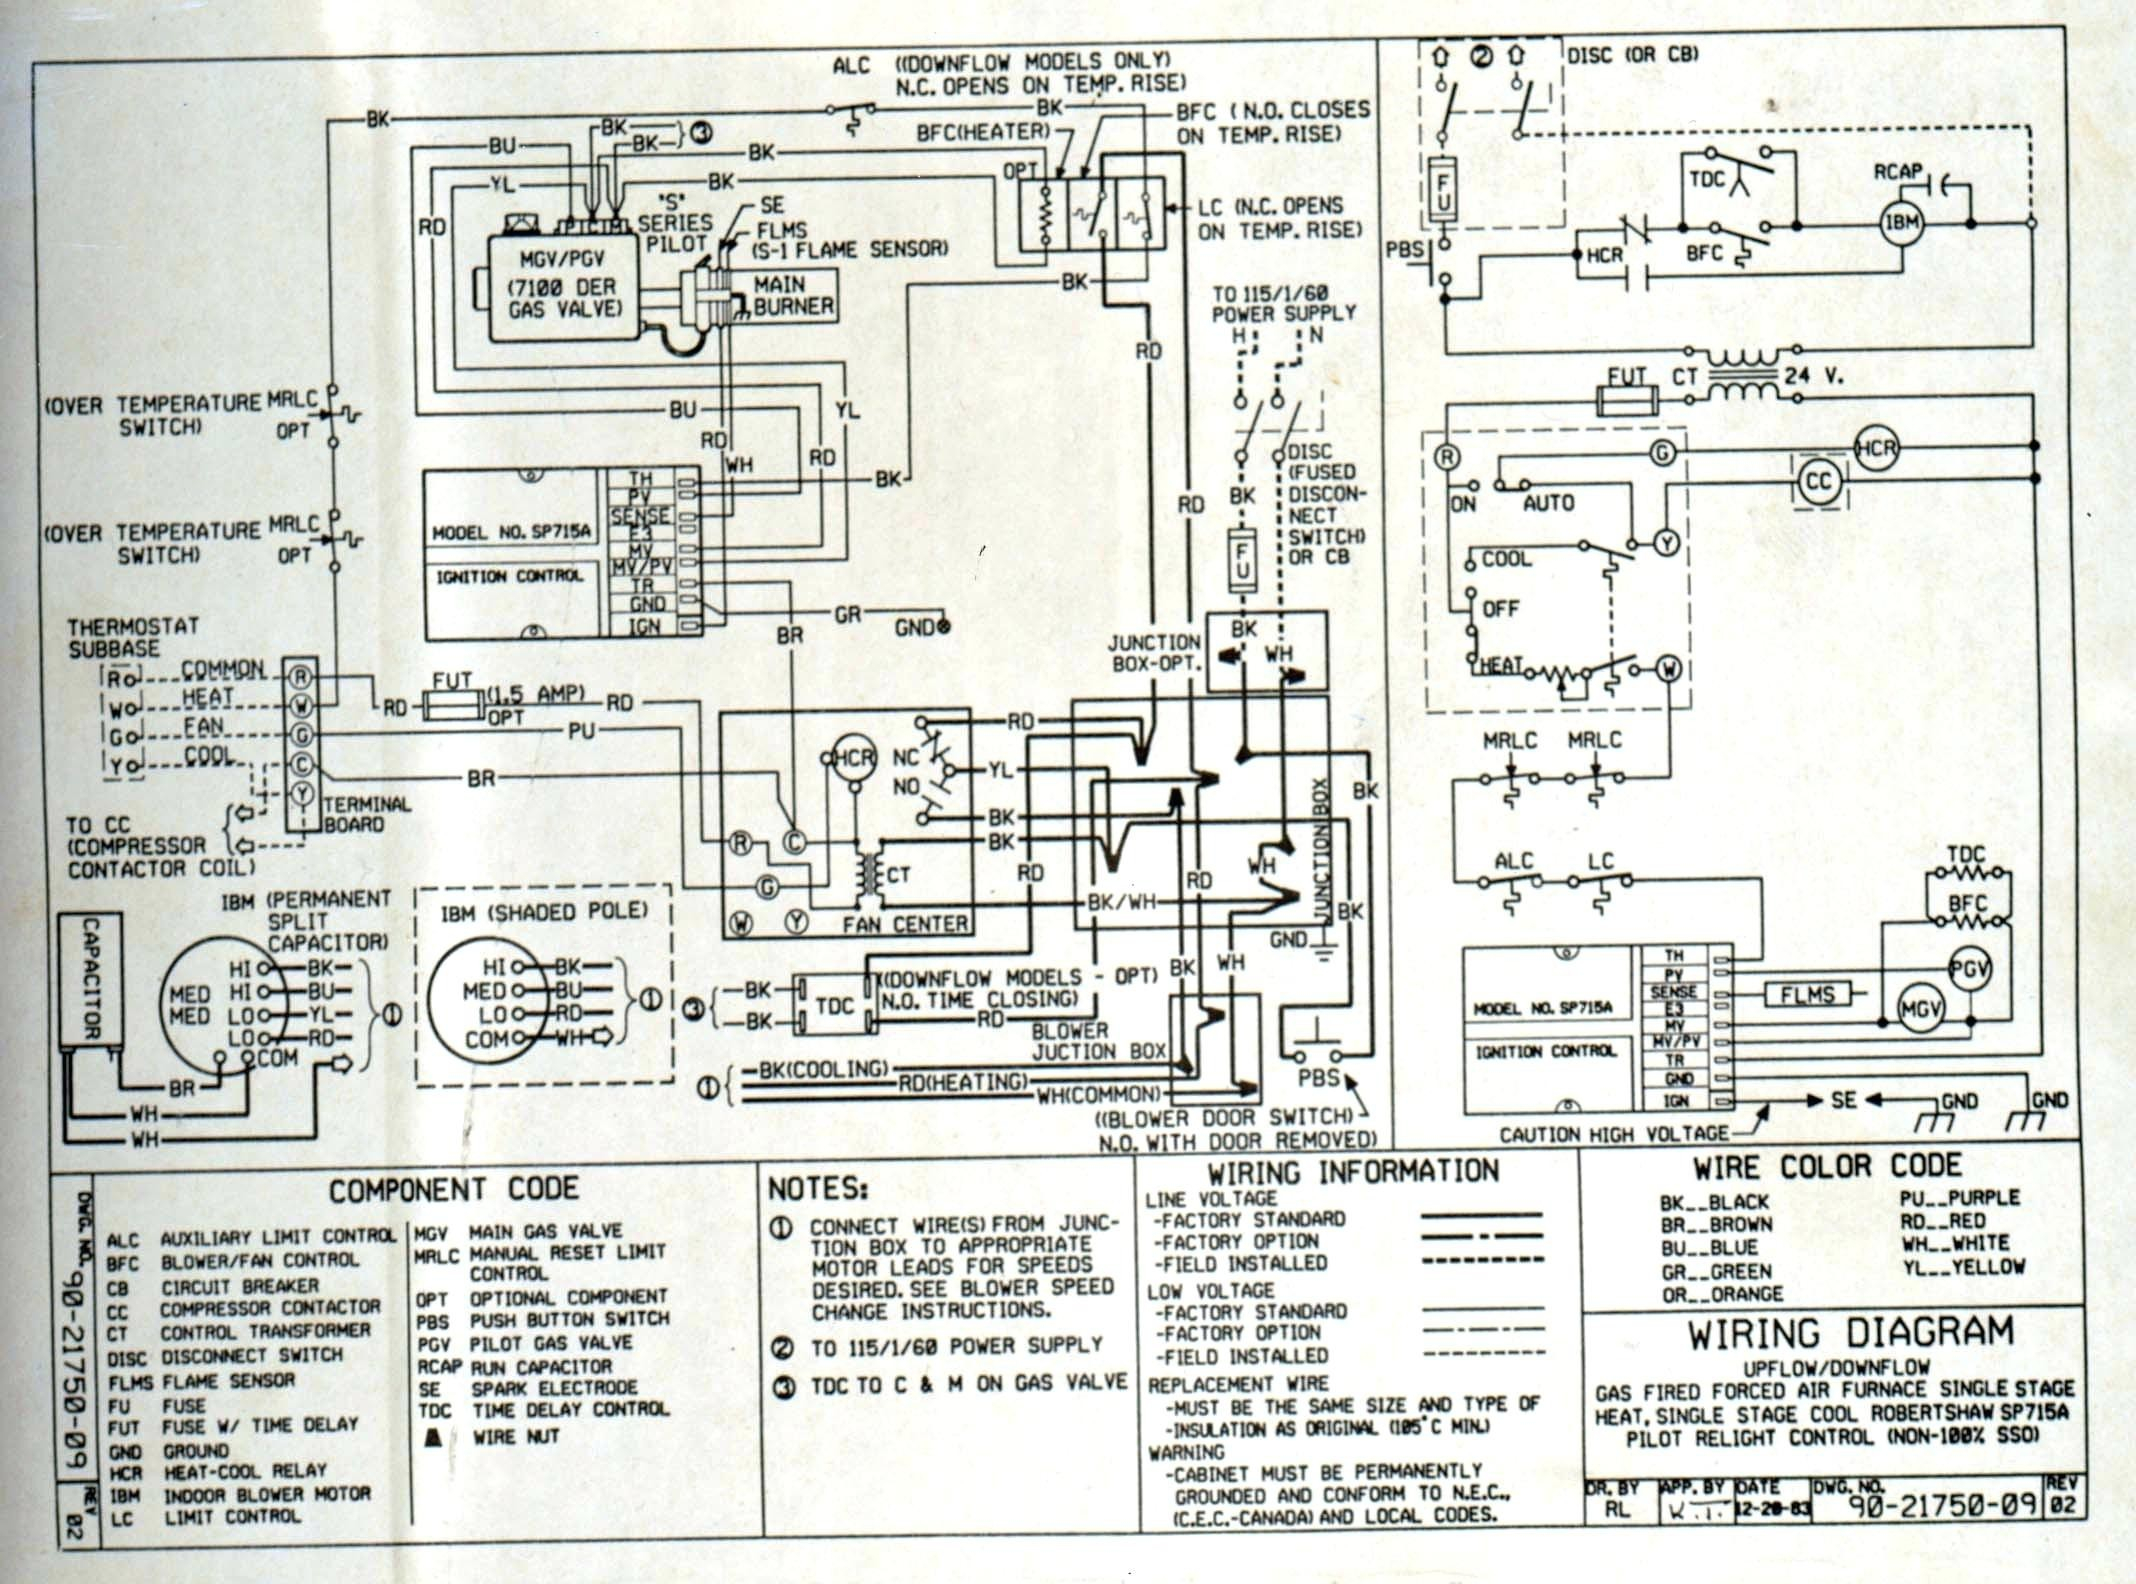 wiring diagram for mobile home furnace Download-Wiring Diagram For Miller Electric Furnace Inspirationa Manufactured Home Wiring Diagrams Fresh Miller Furnace Wiring 6-m